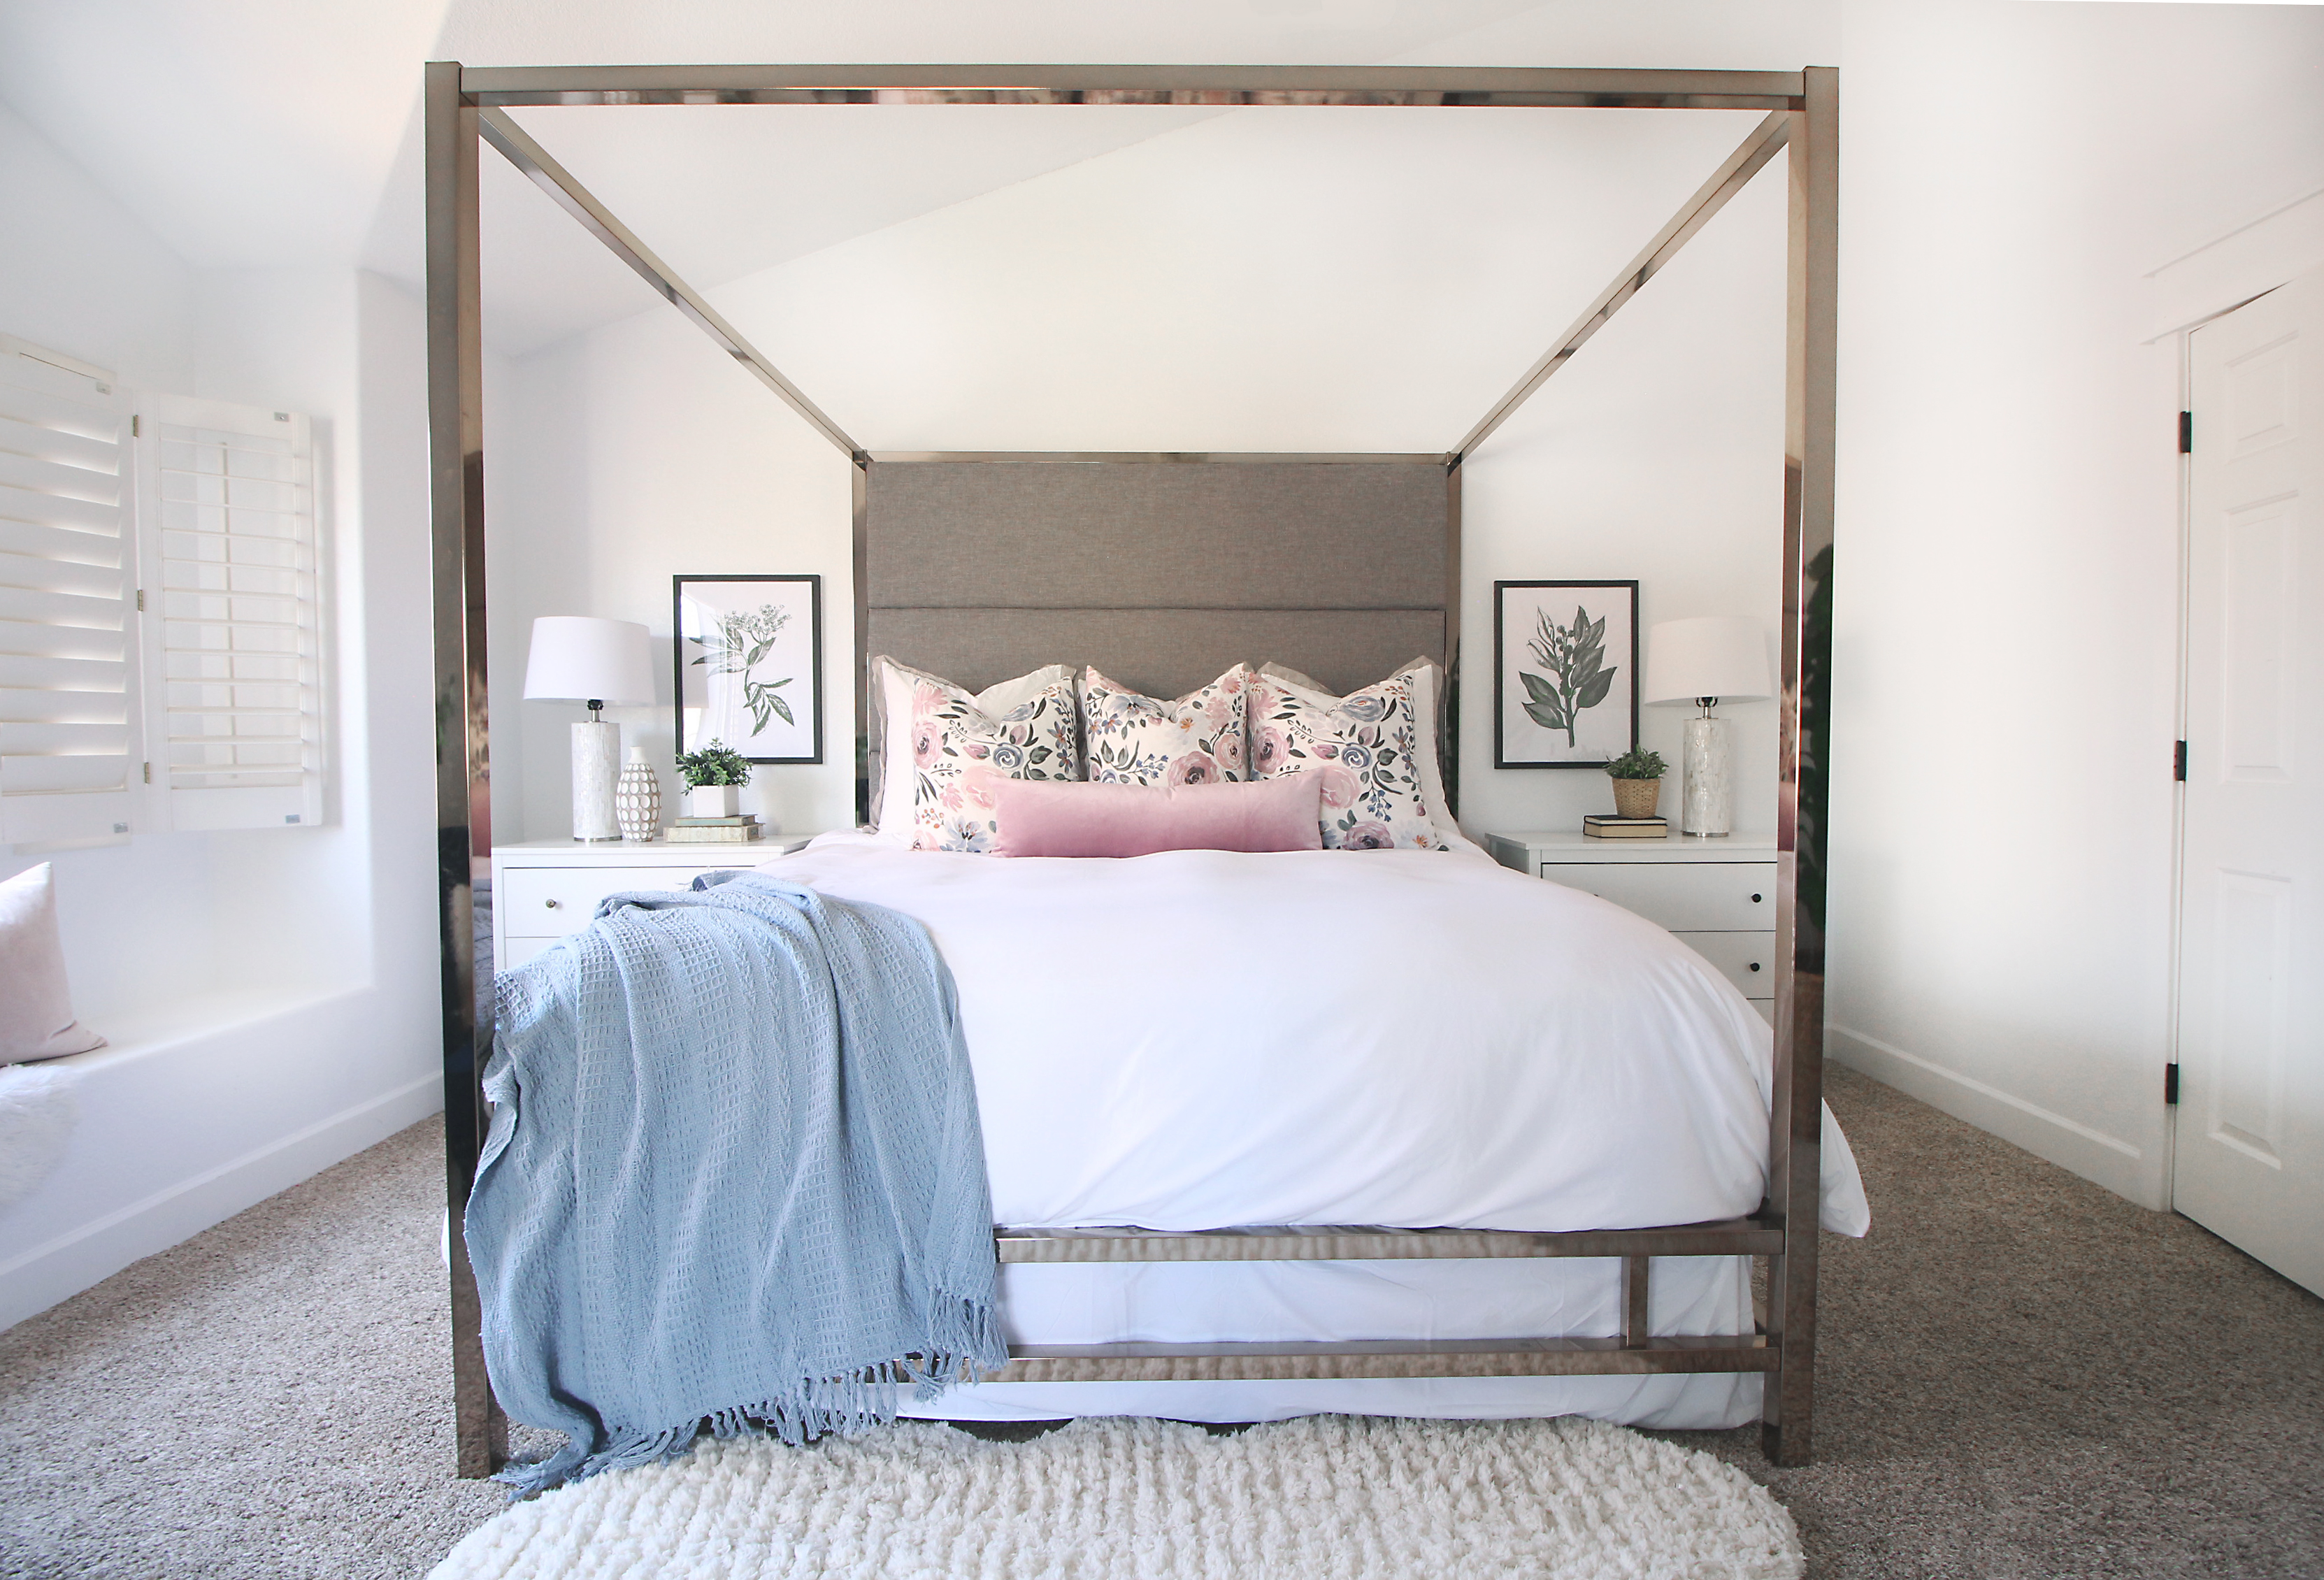 Park Home Reno: Master Bedroom Reveal - Classy Clutter